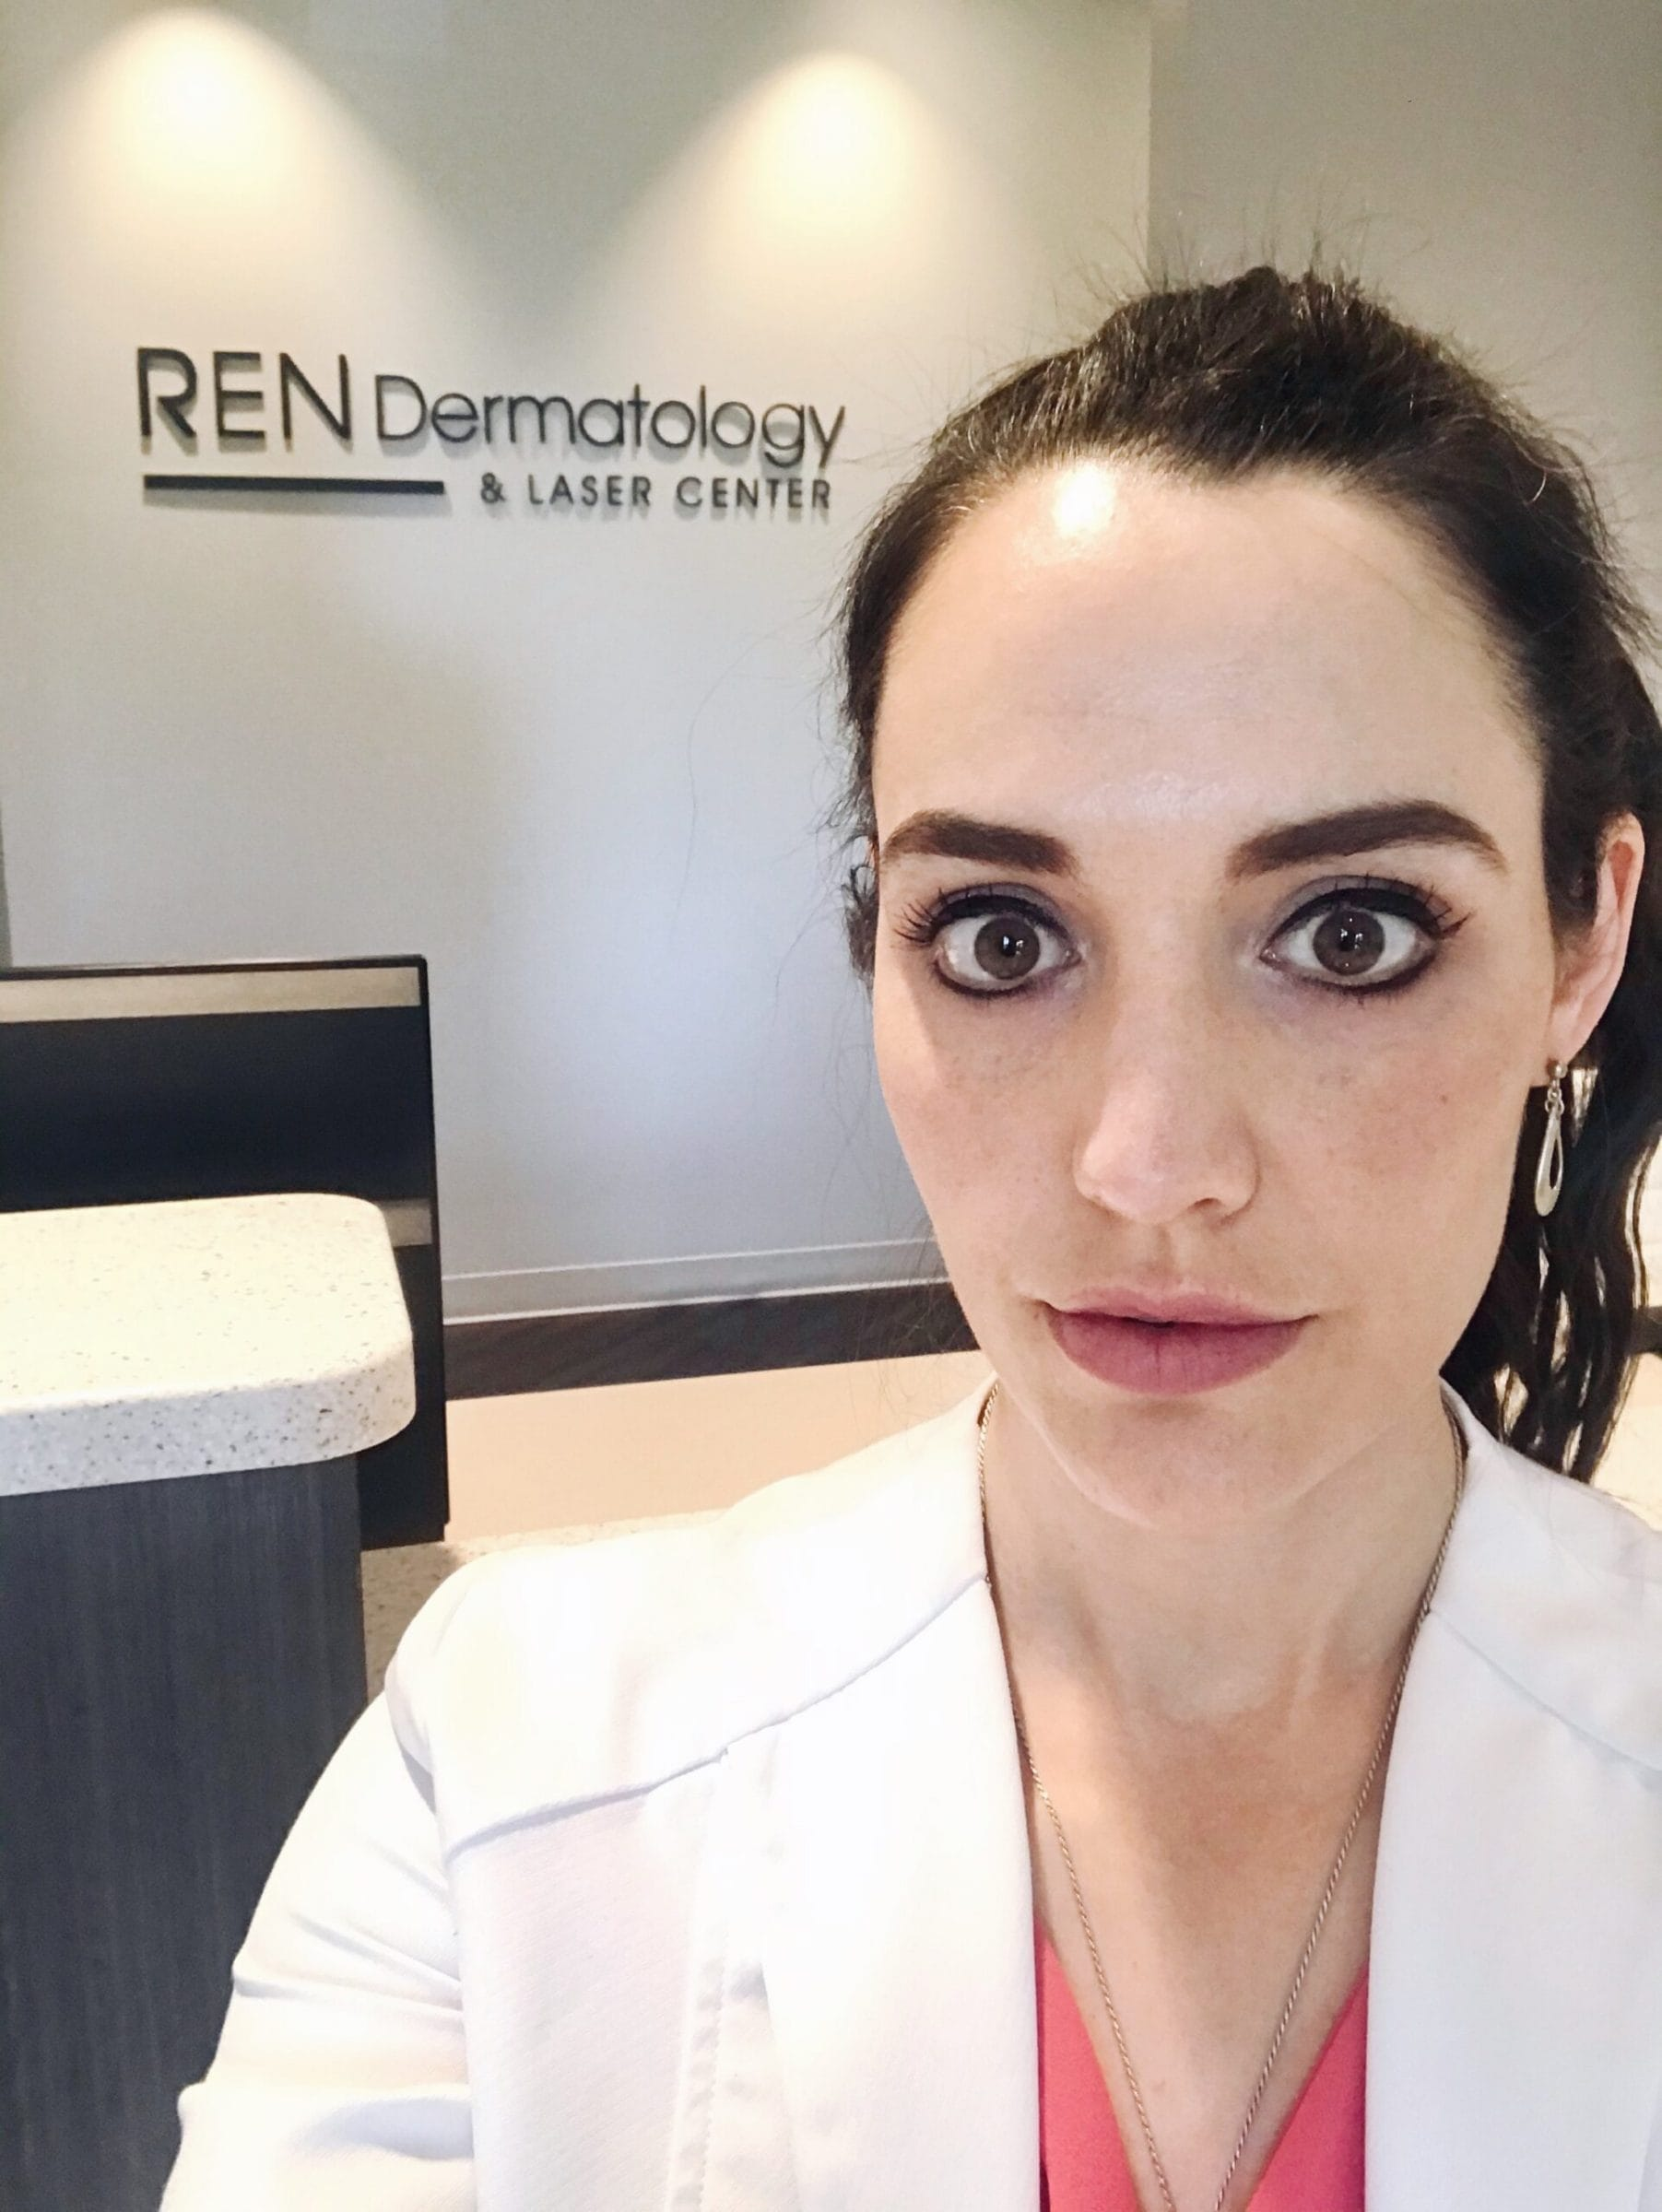 REN Dermatology on the News